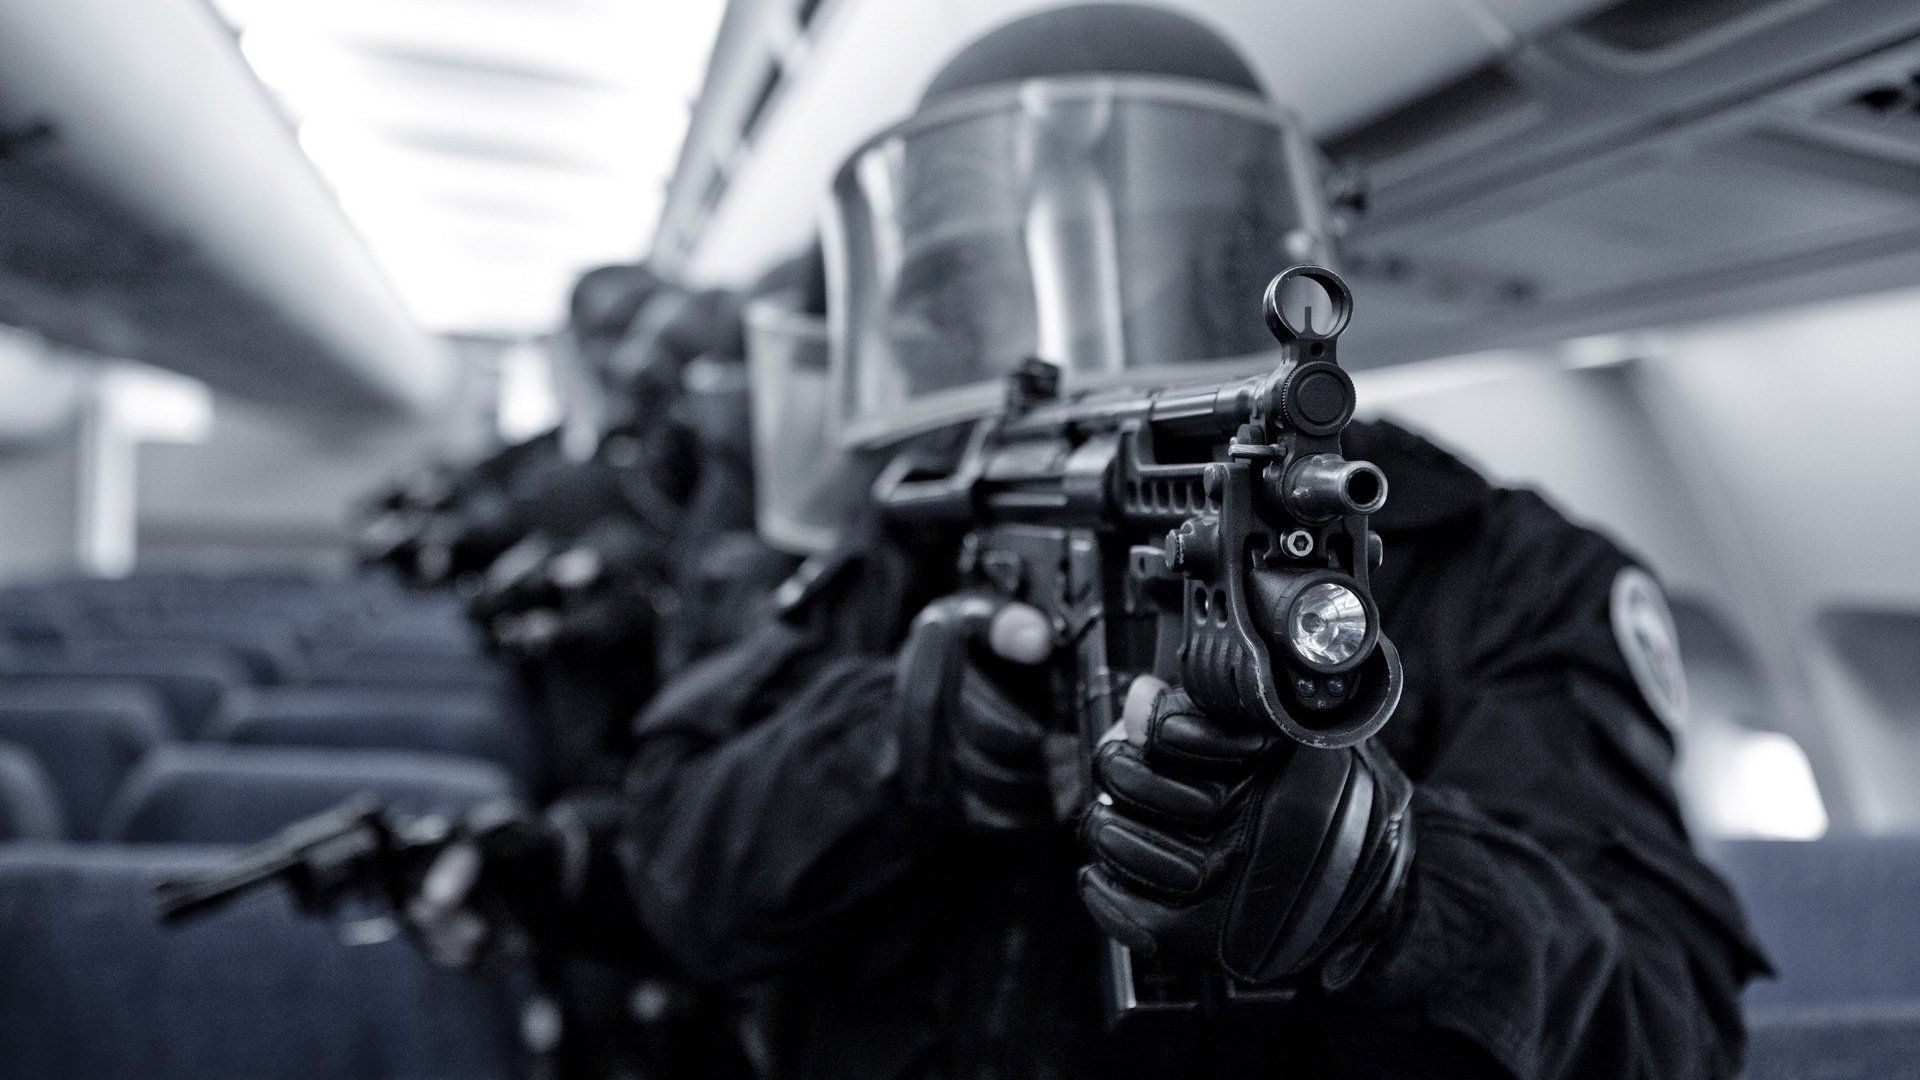 Swat-Assault-Team-1080p-Desktop-Wallpaper